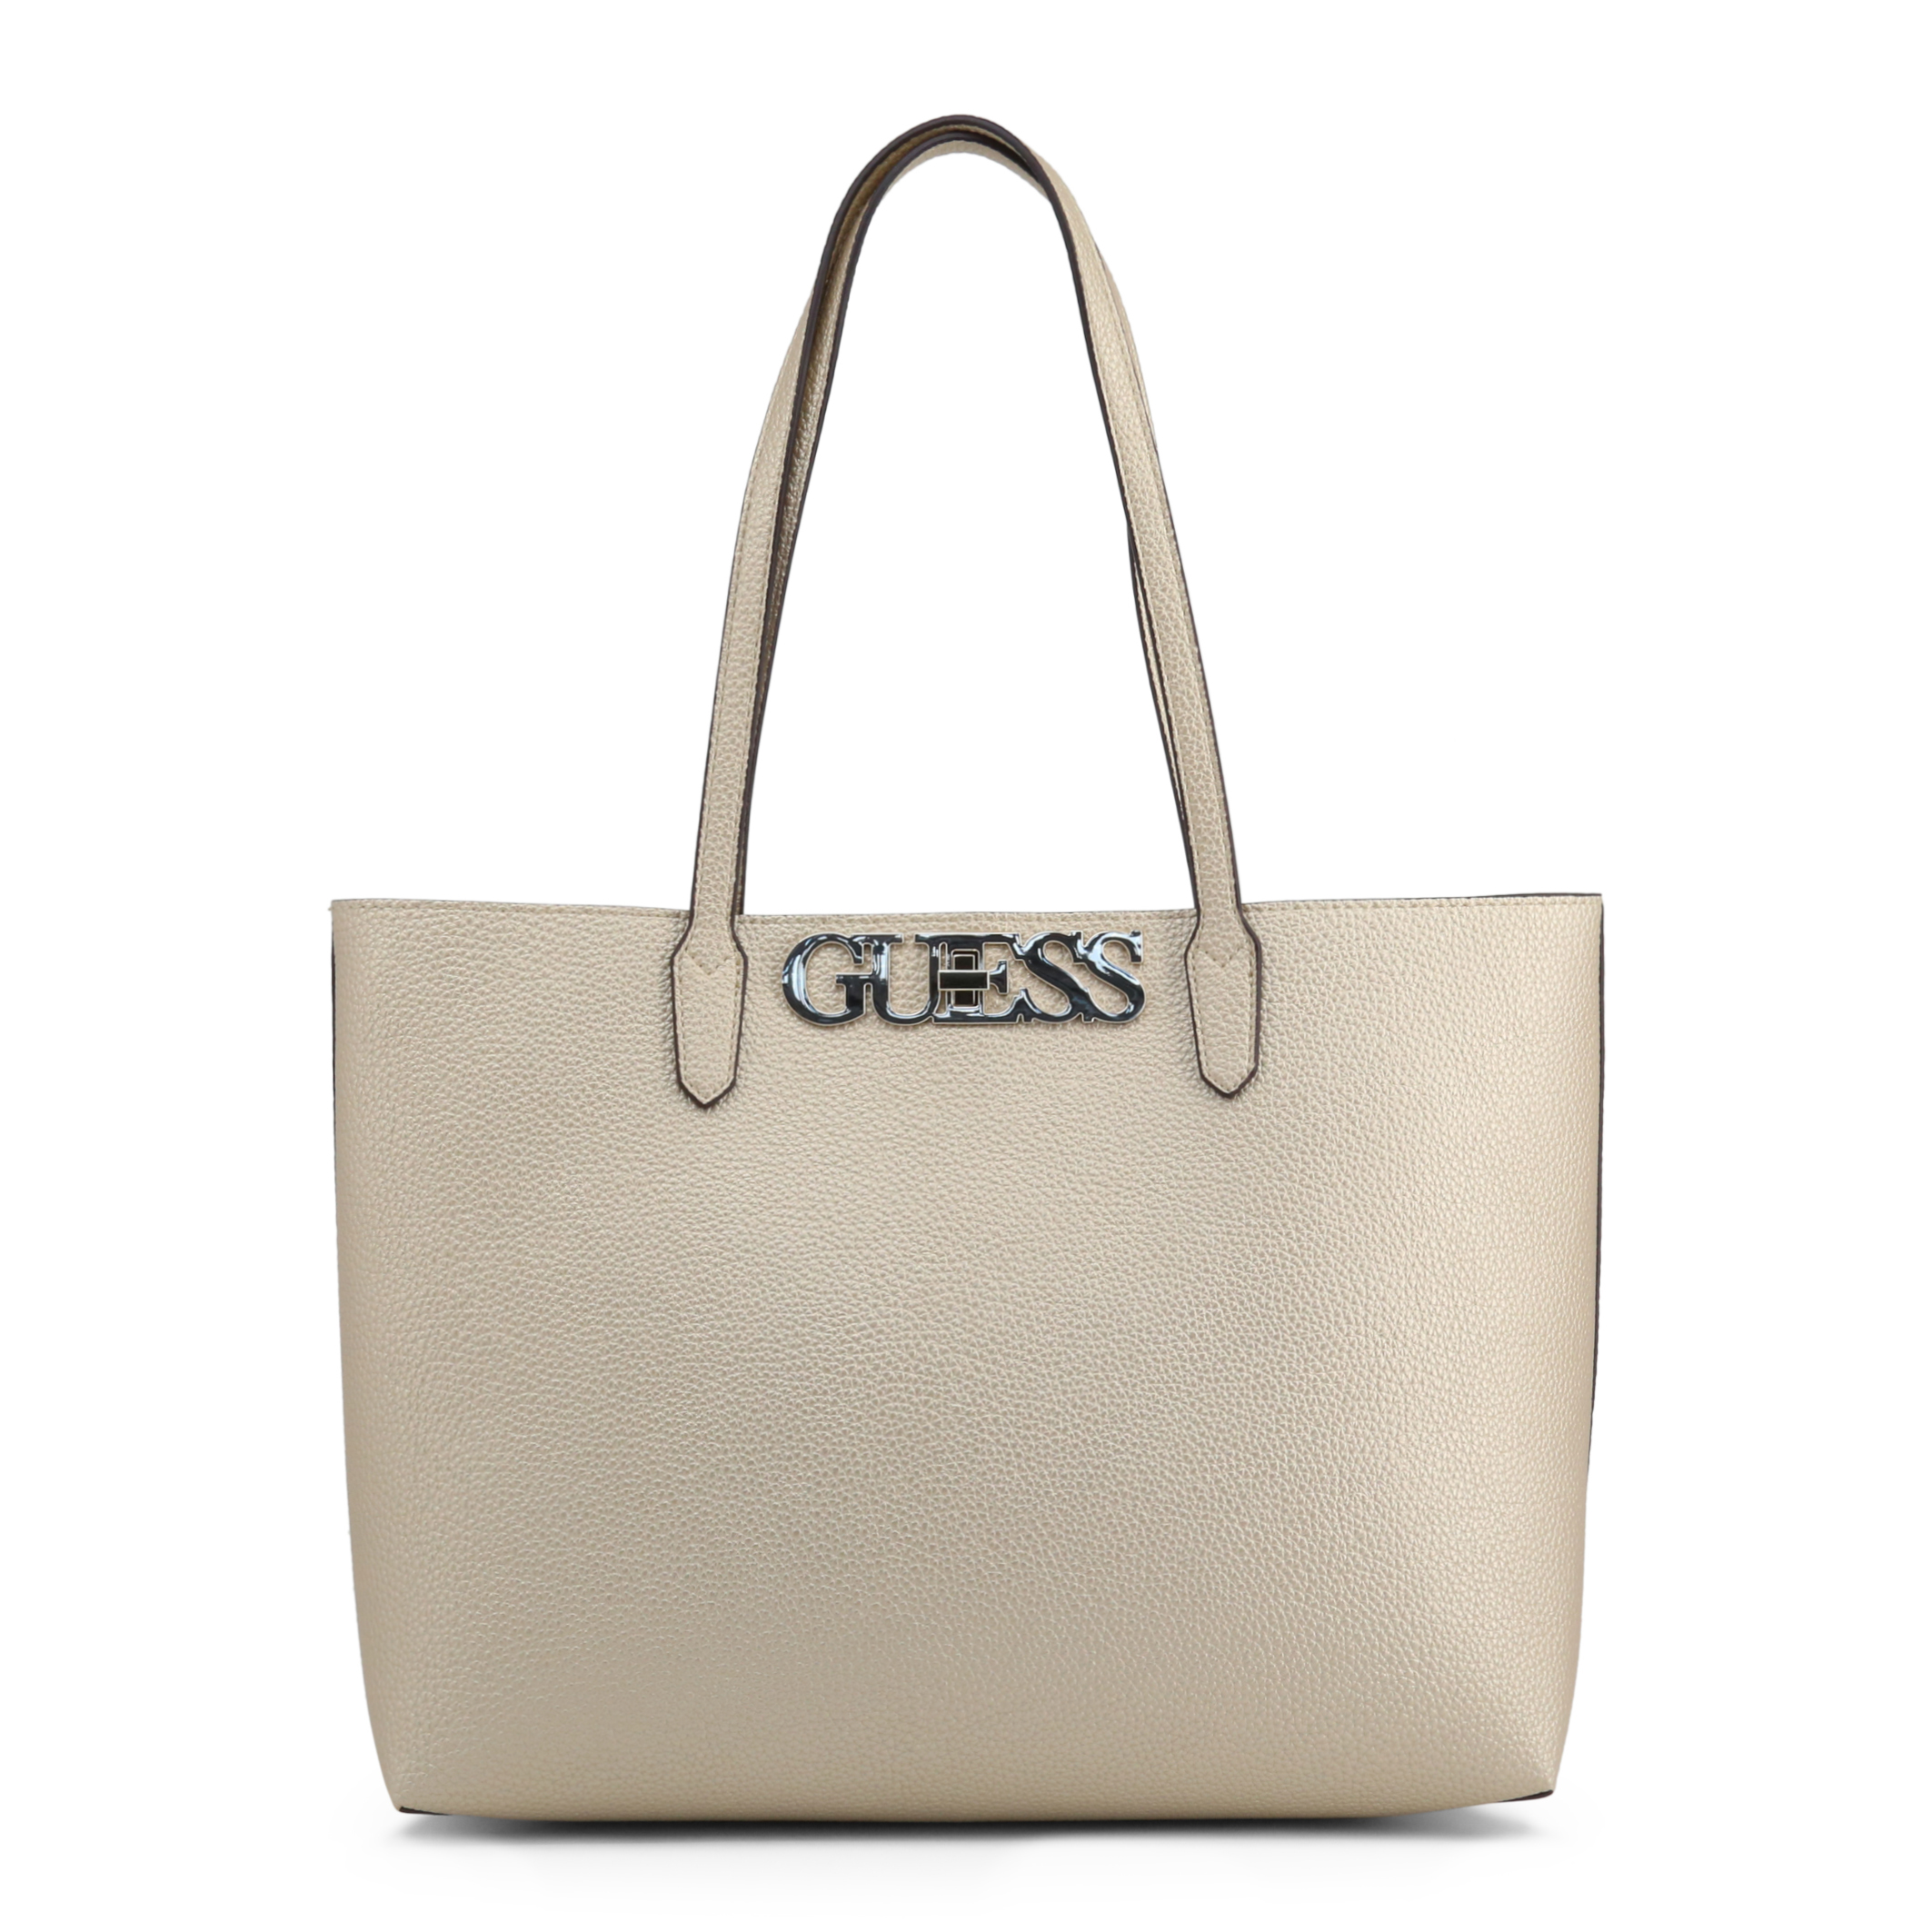 Shopping bag de Mujer Guess Amarillo Poliuretano